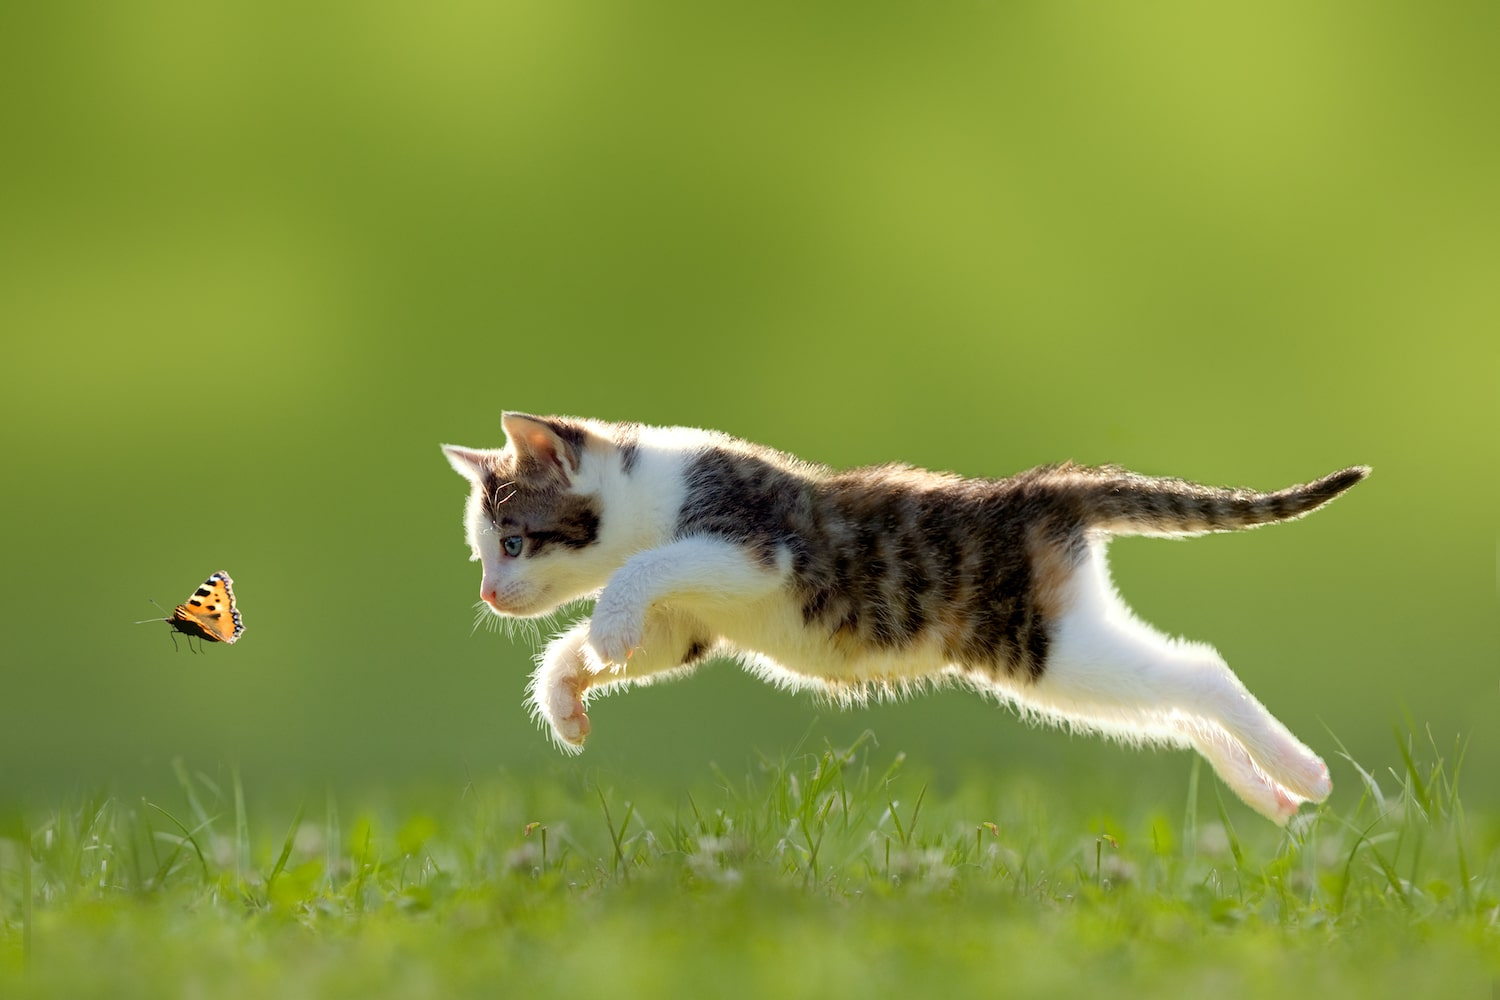 cat chasing a Butterly